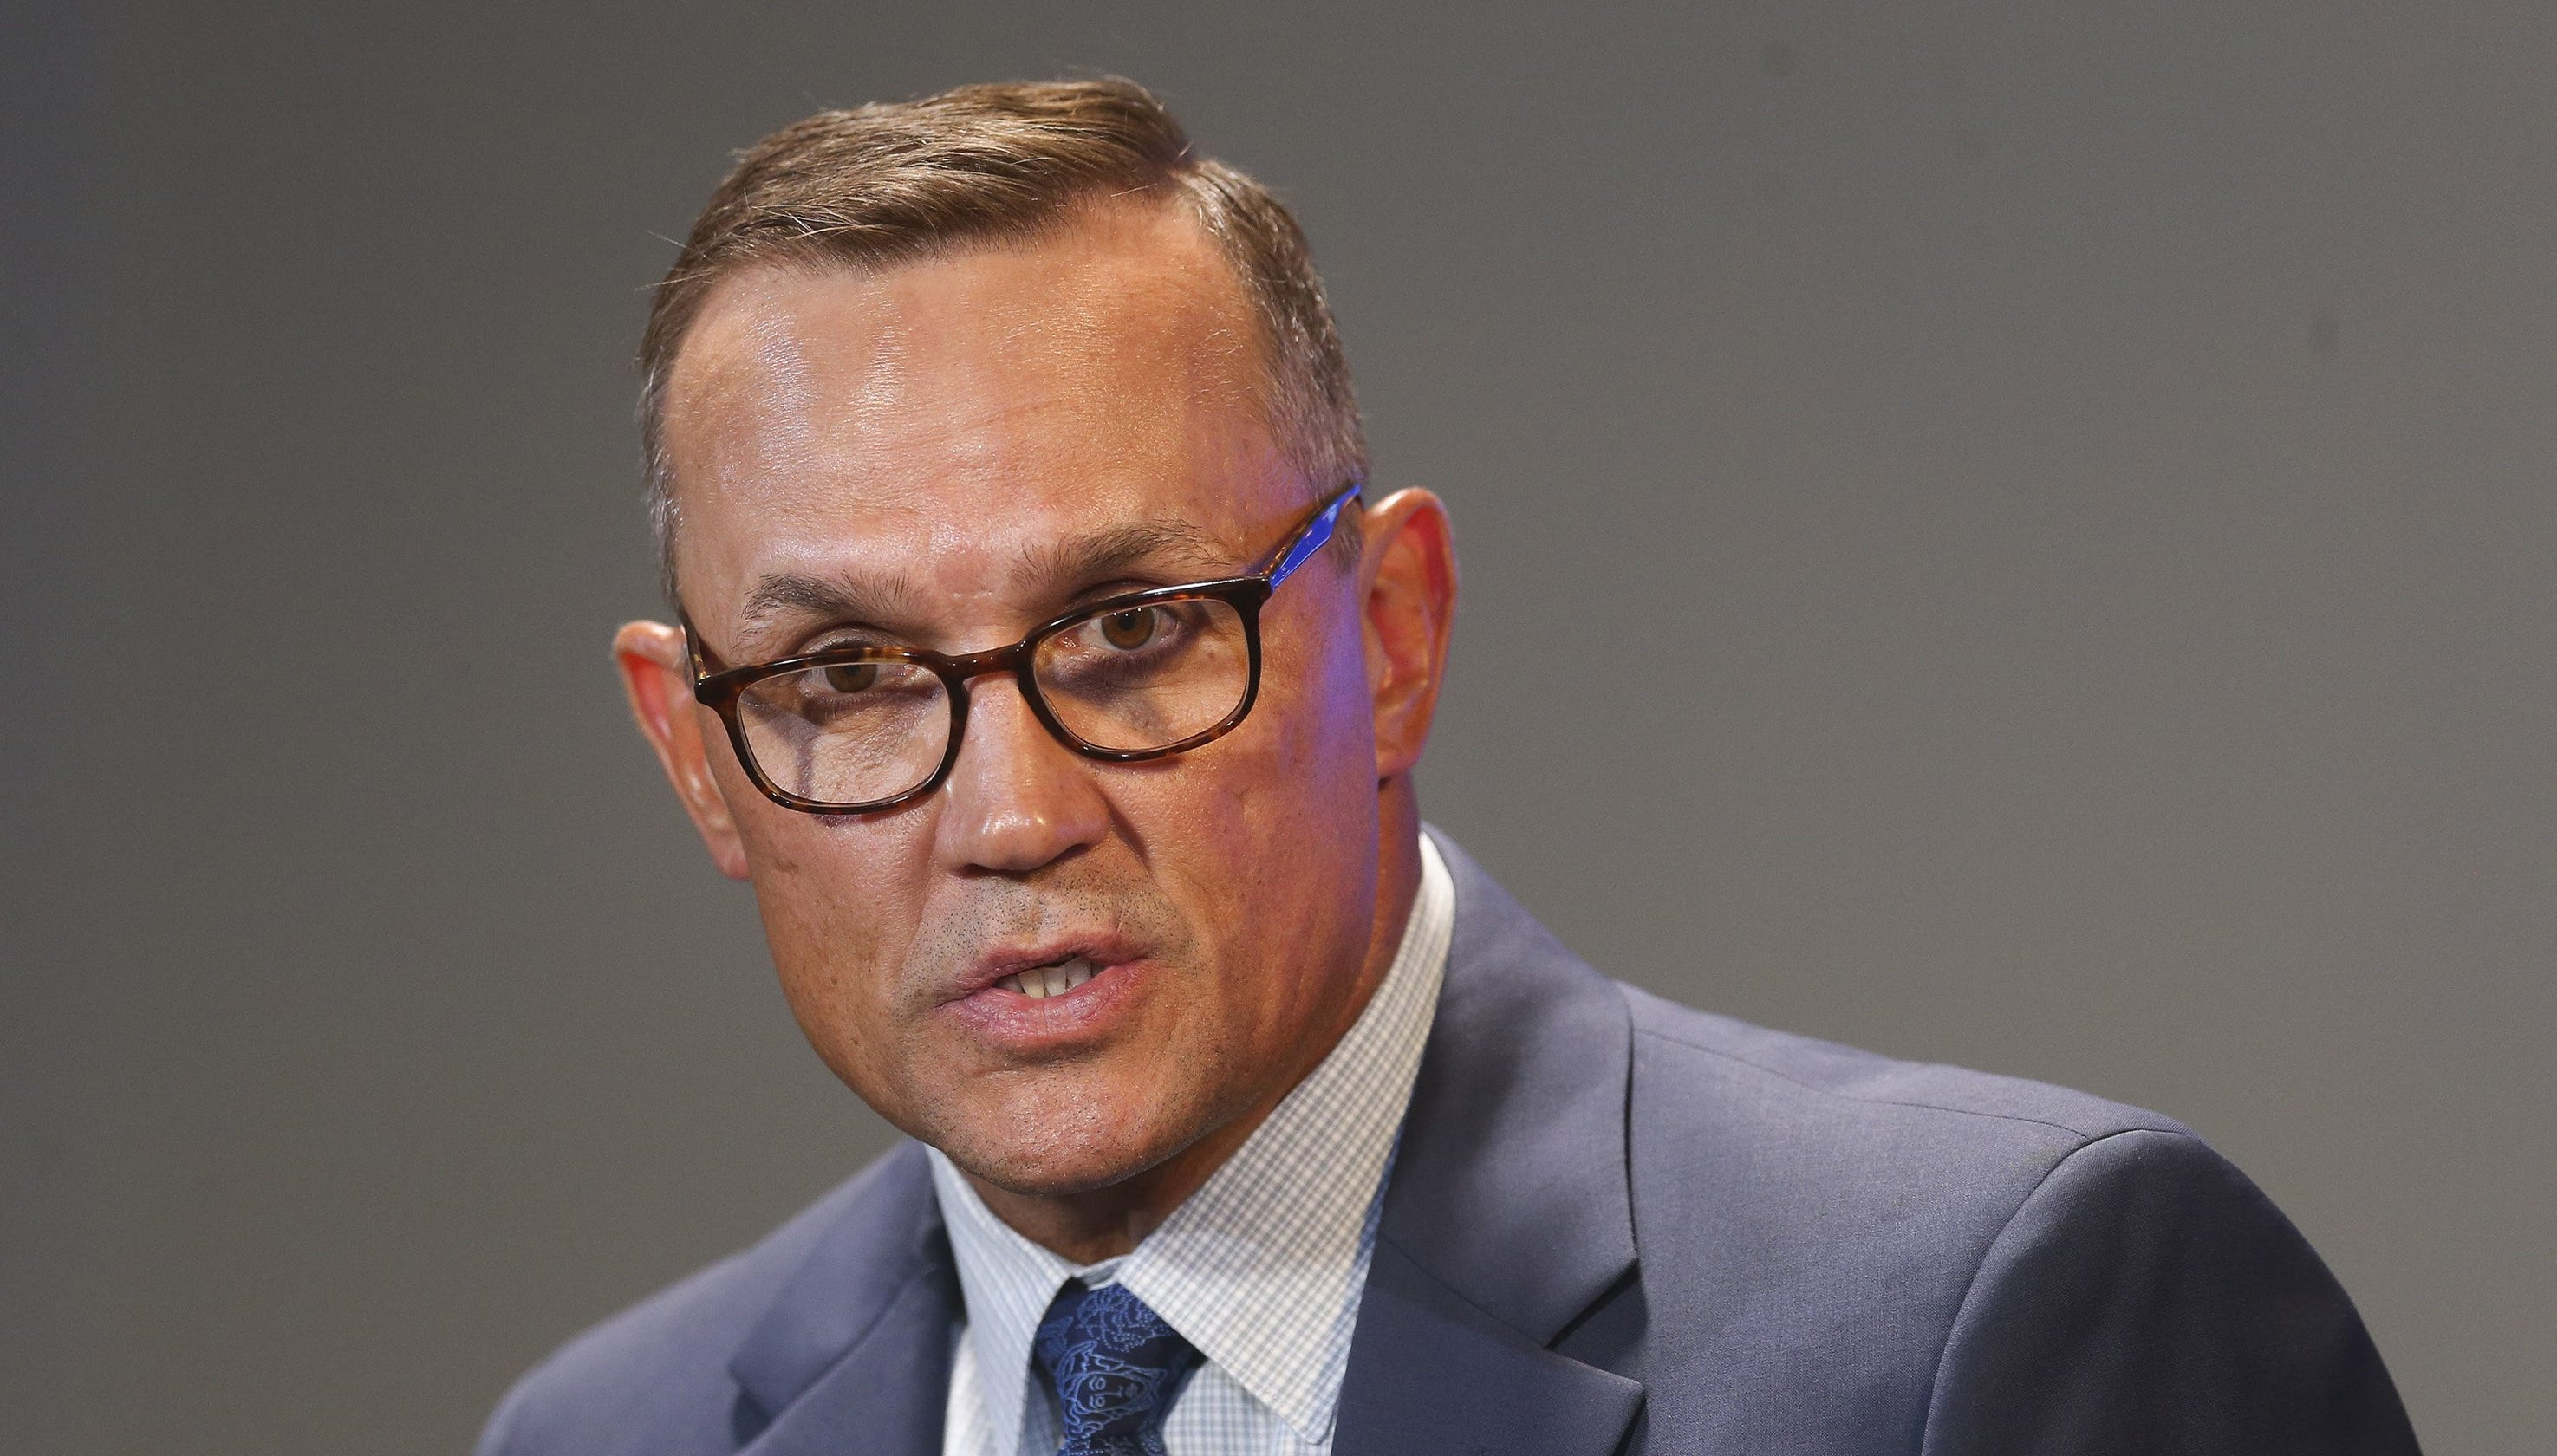 c1042f576c0 Detroit Red Wings must hire Steve Yzerman ASAP to fix ... everything